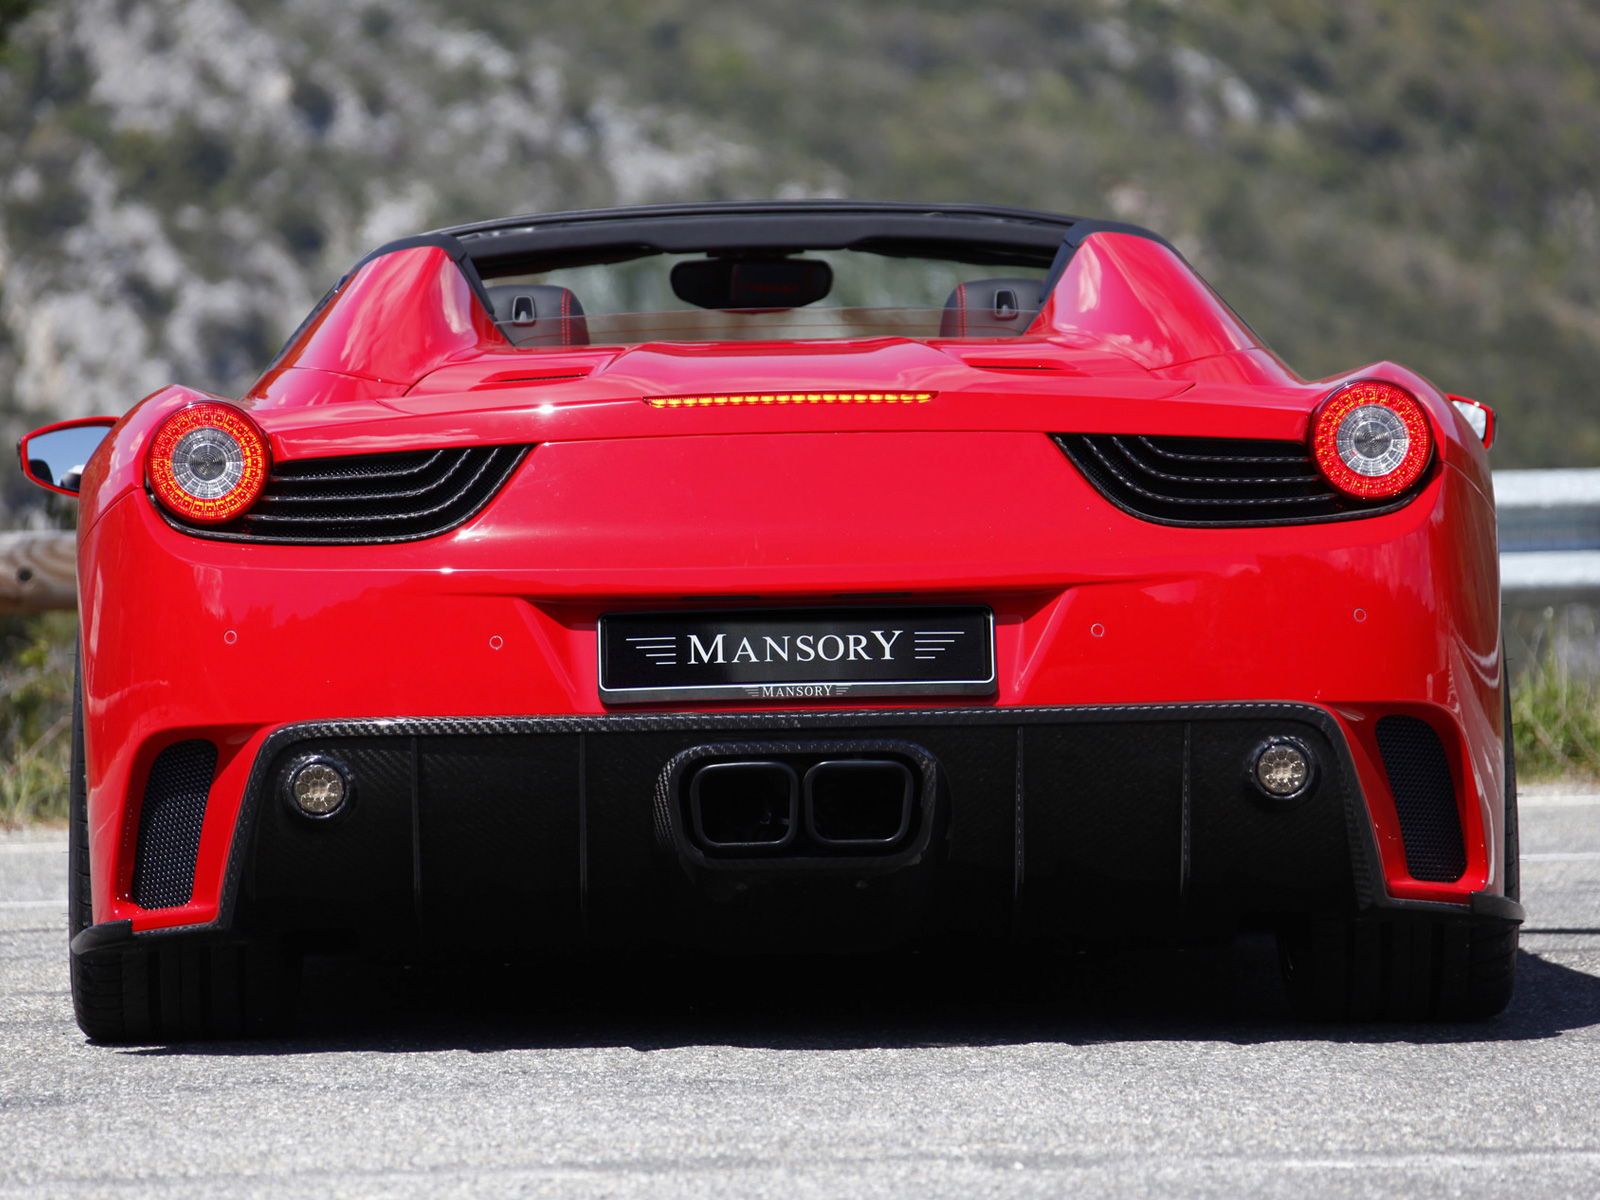 2012 Mansory Ferrari 458 Spider - Rear View